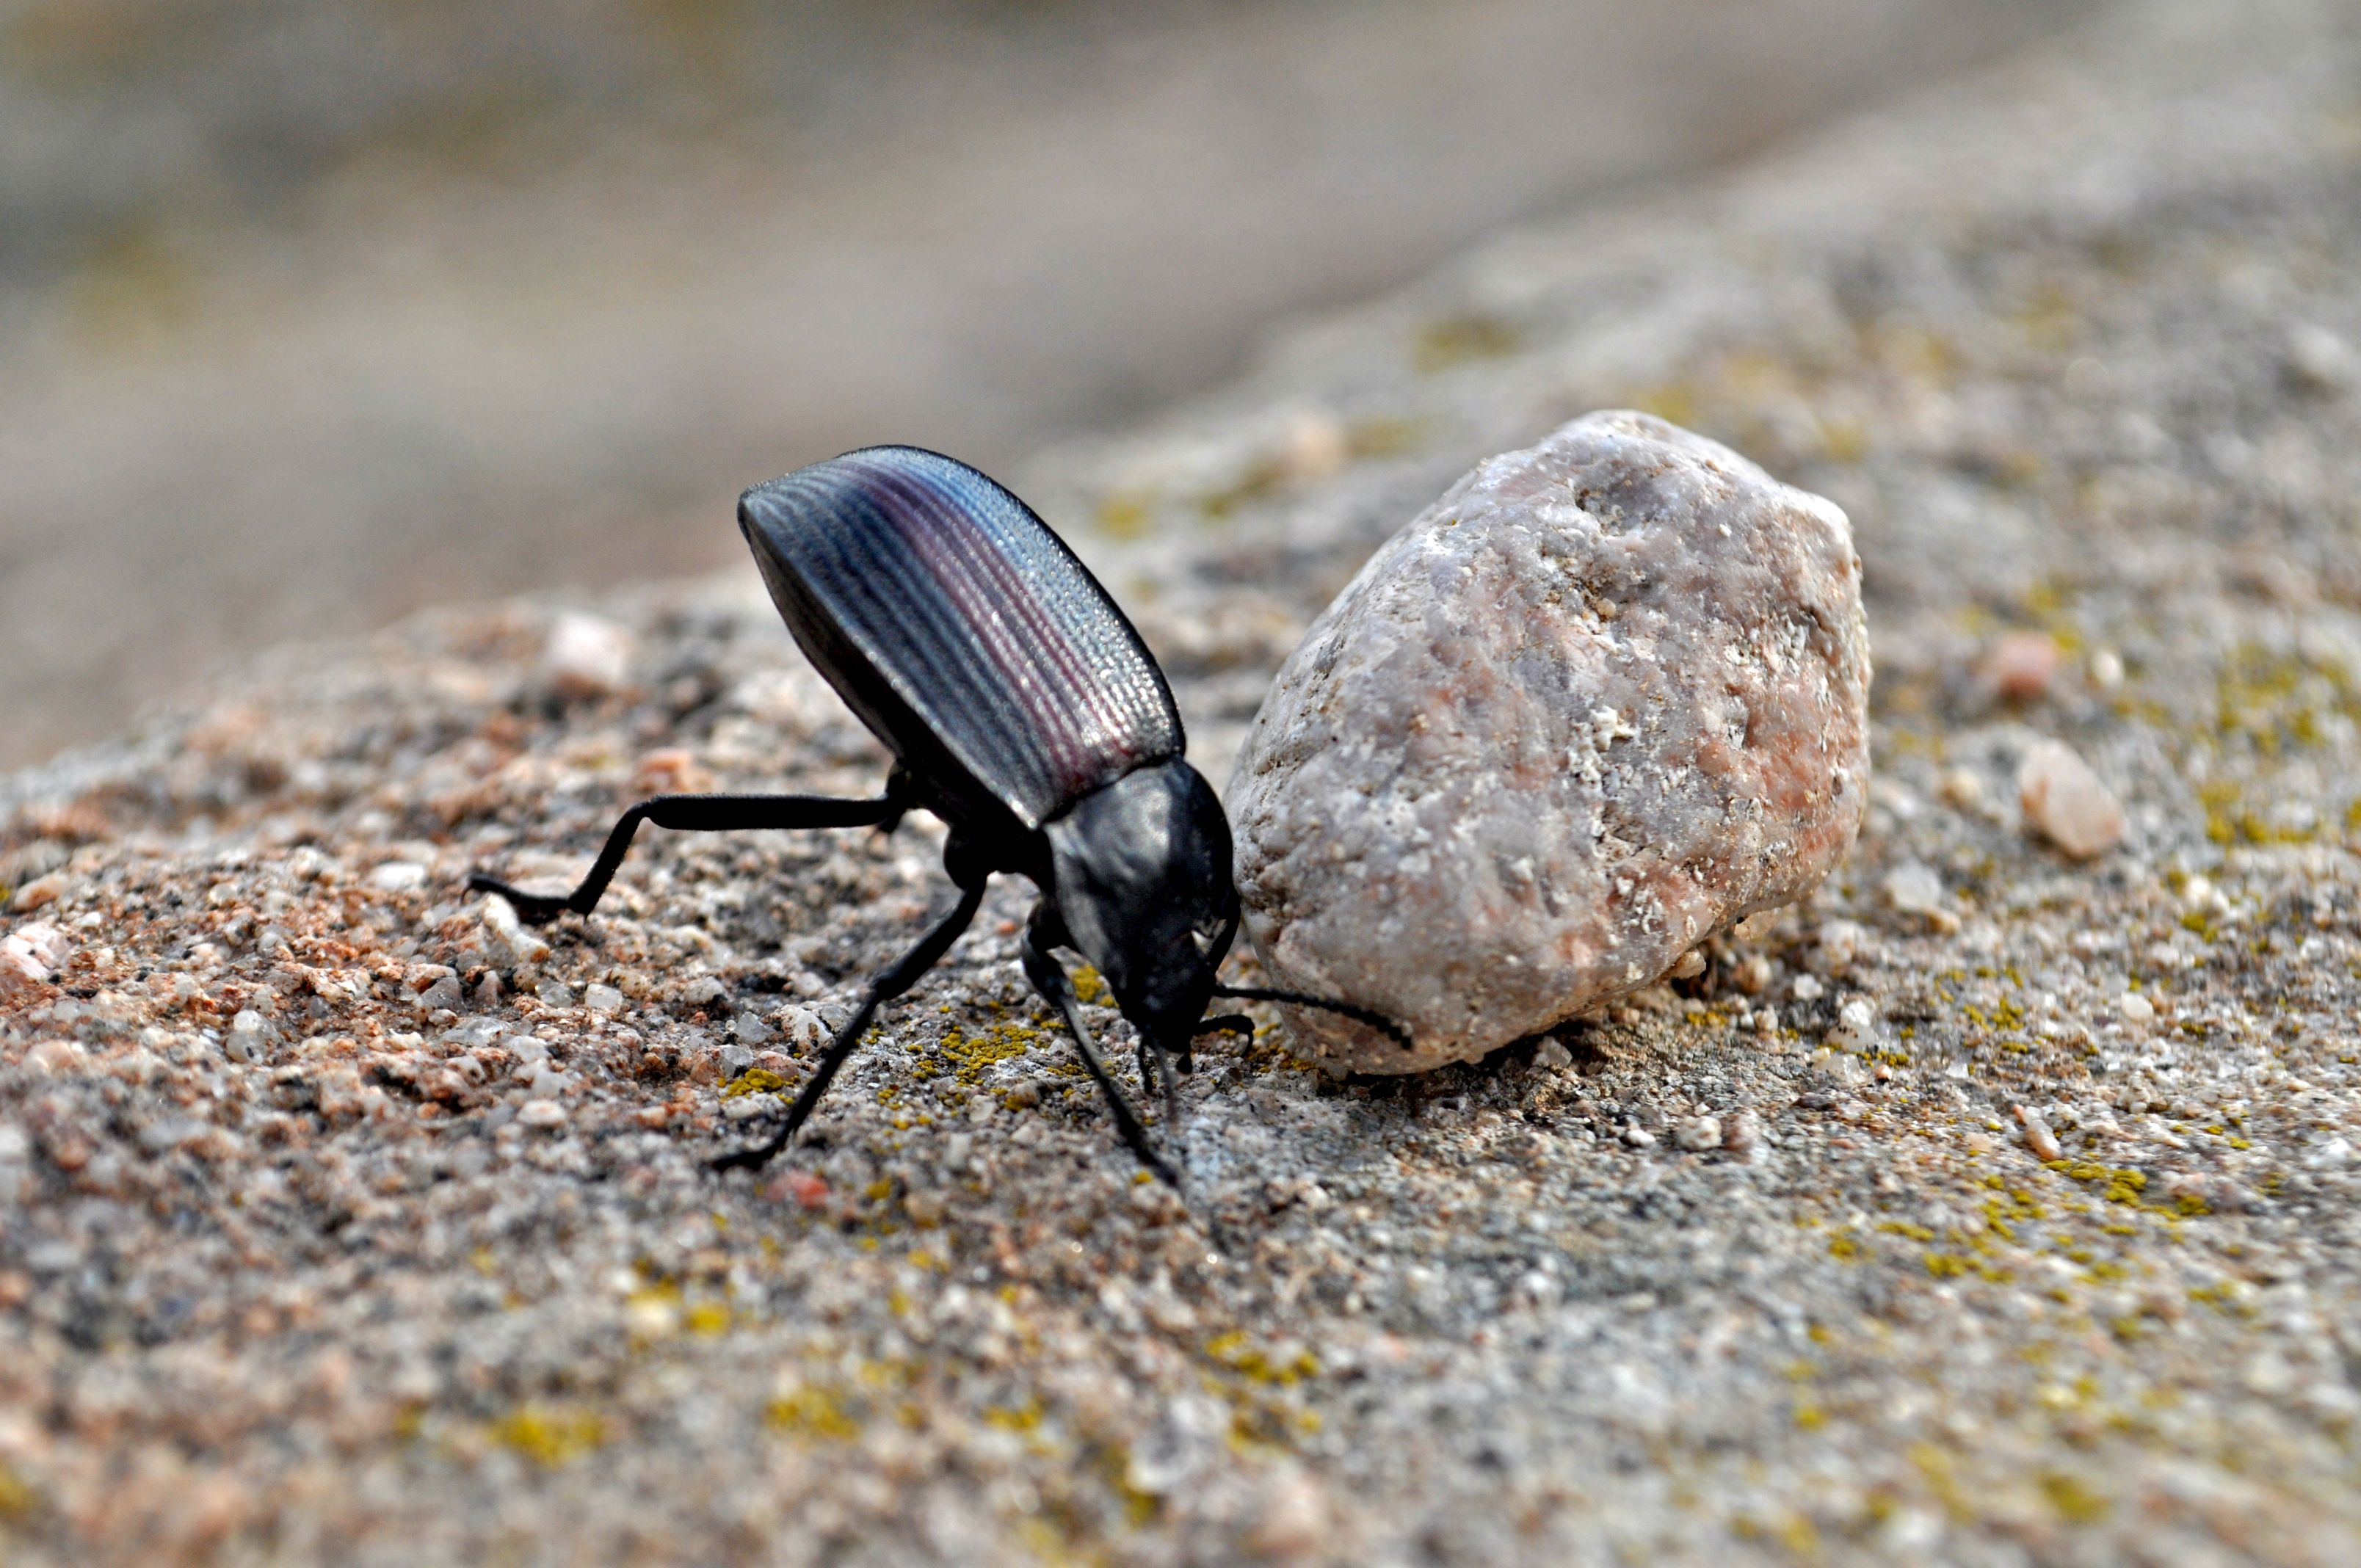 A Beetle Trying to Move a Rock